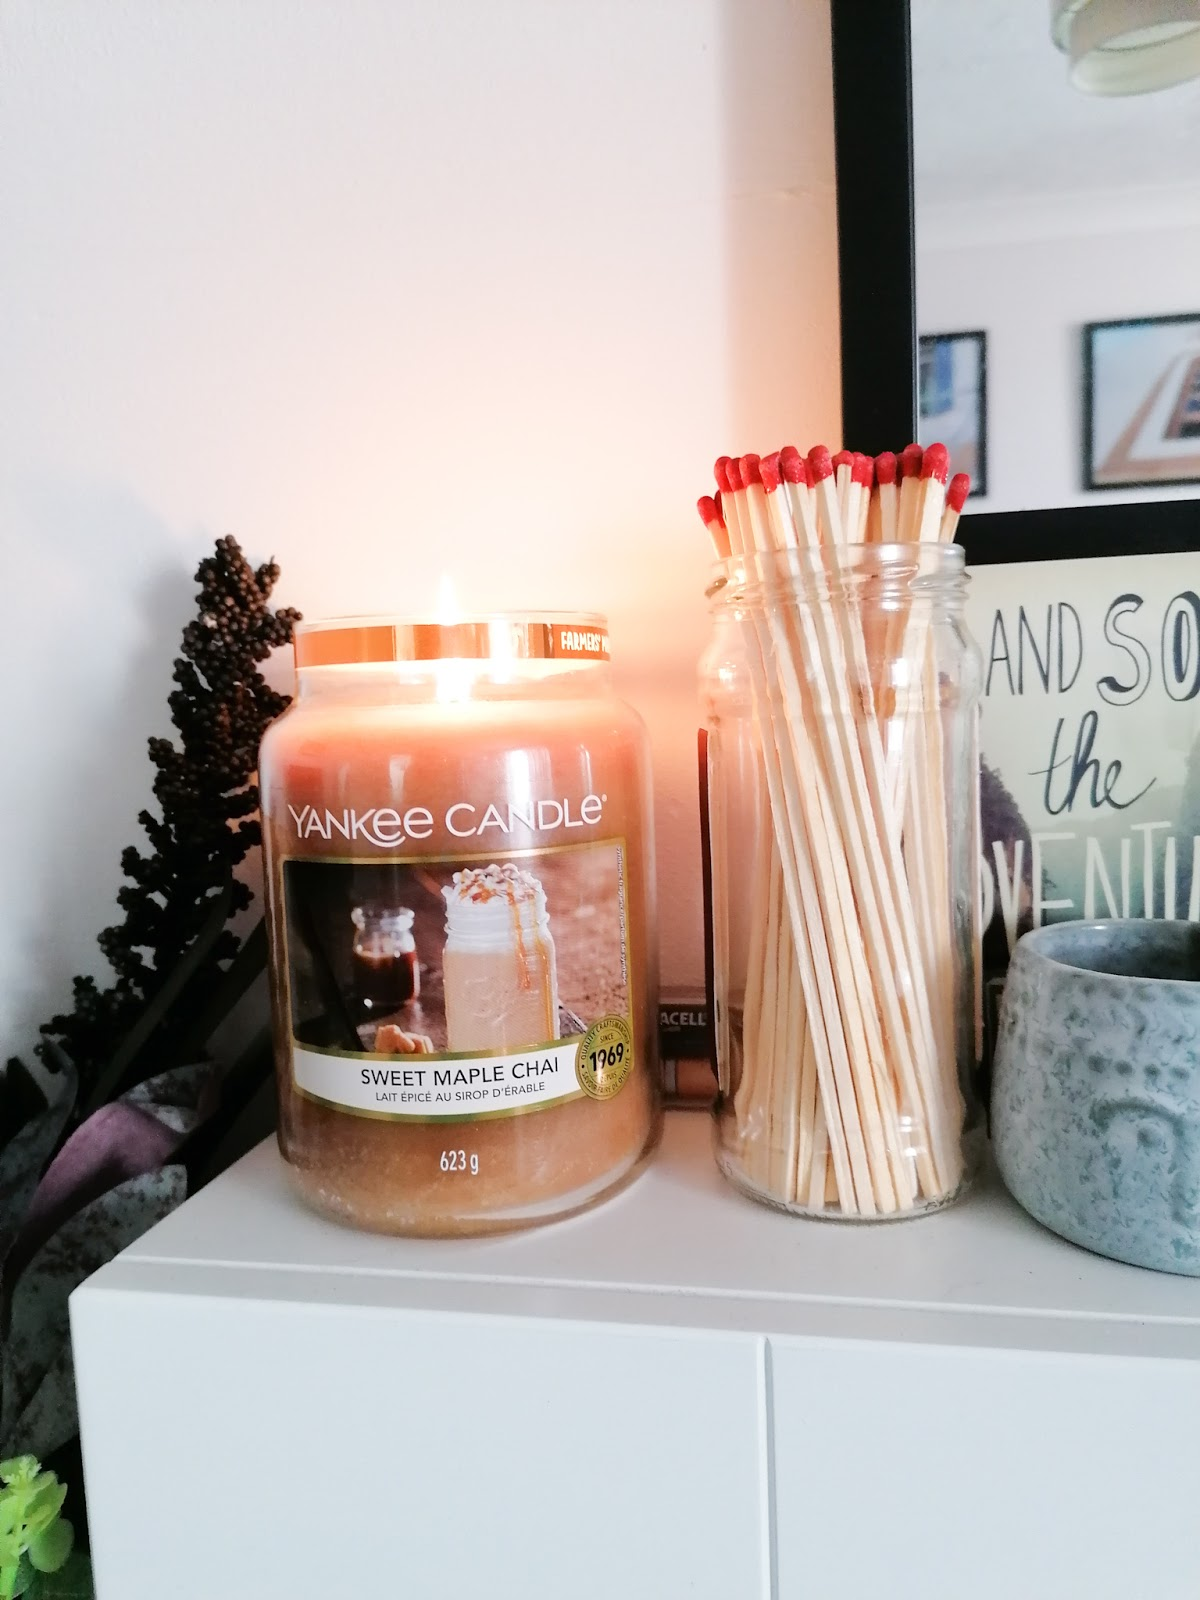 sweet maple chai Yankee candle review